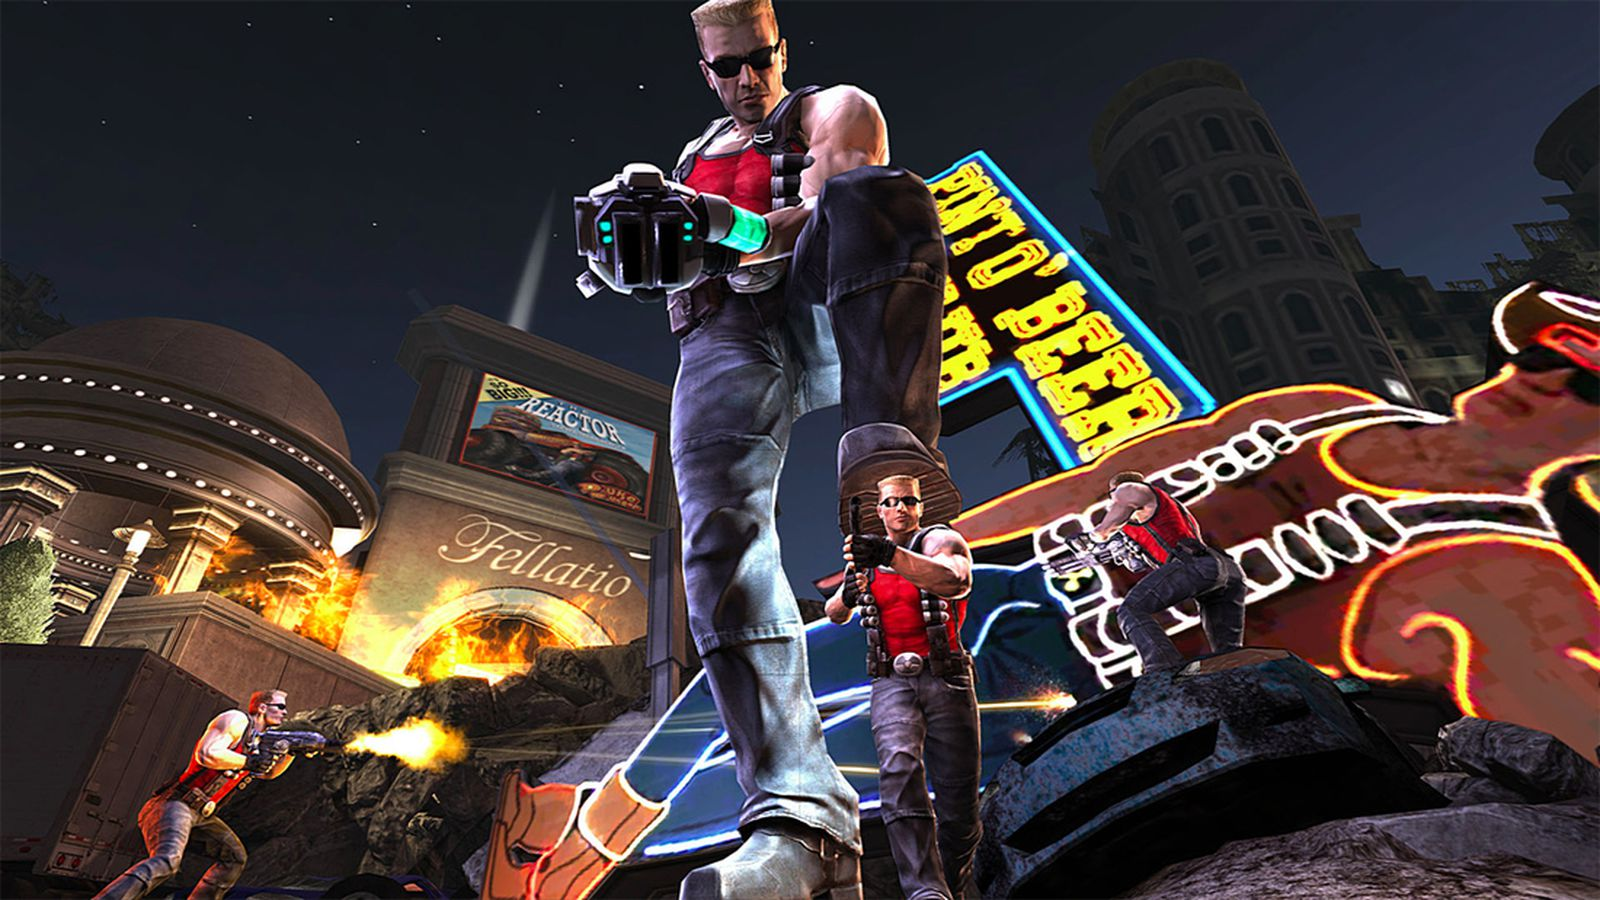 Www 3d God Wallpaper Com 3d Realms Fires Back At Gearbox Duke Nukem Lawsuit Polygon